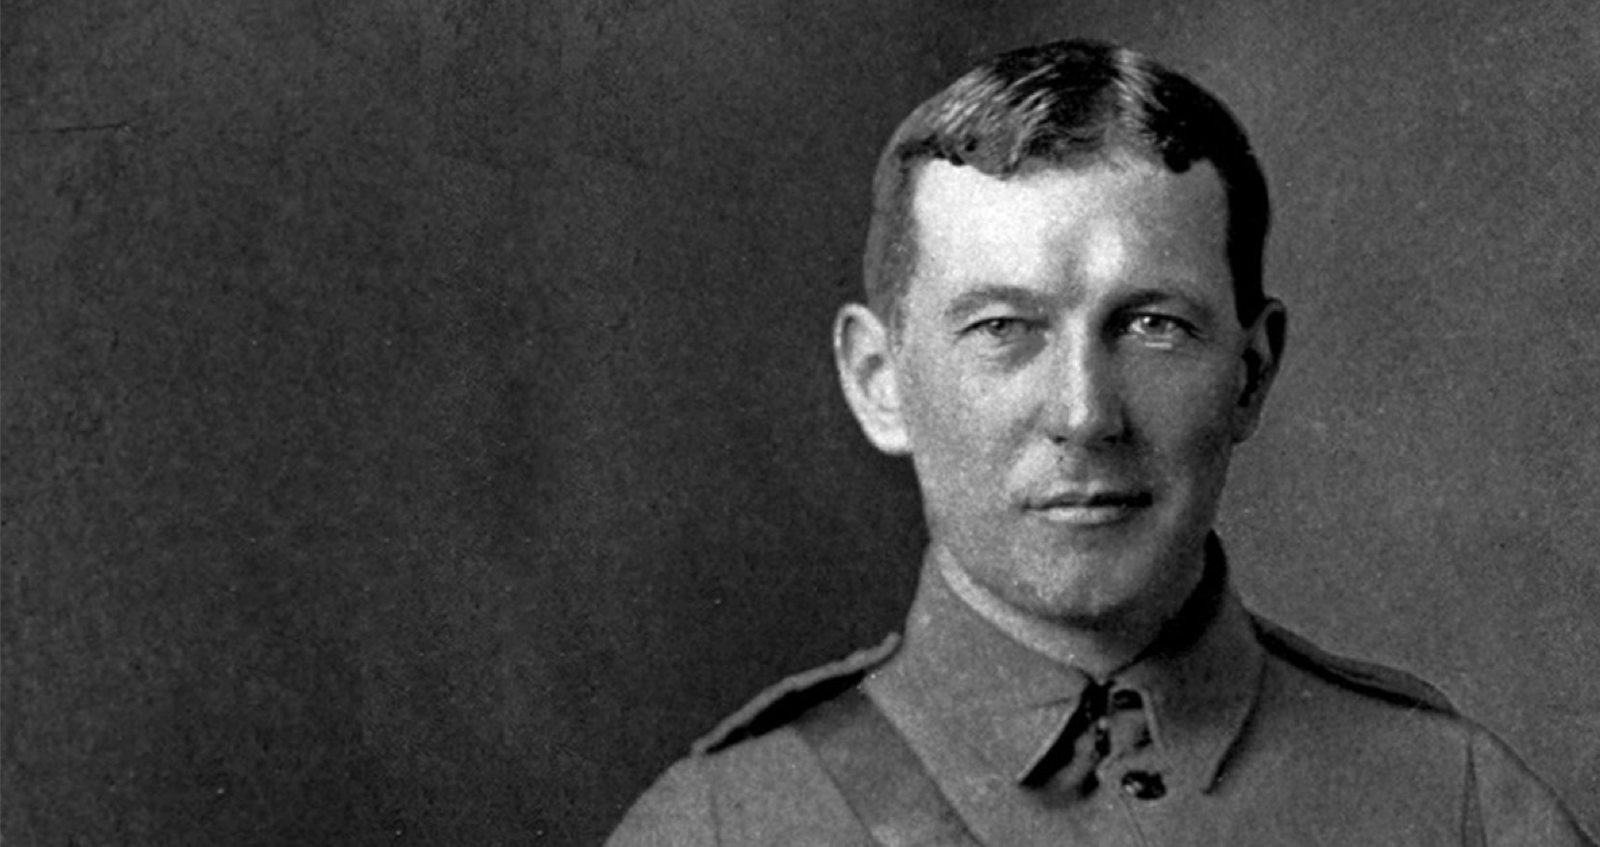 In Flanders Field author John McCrae